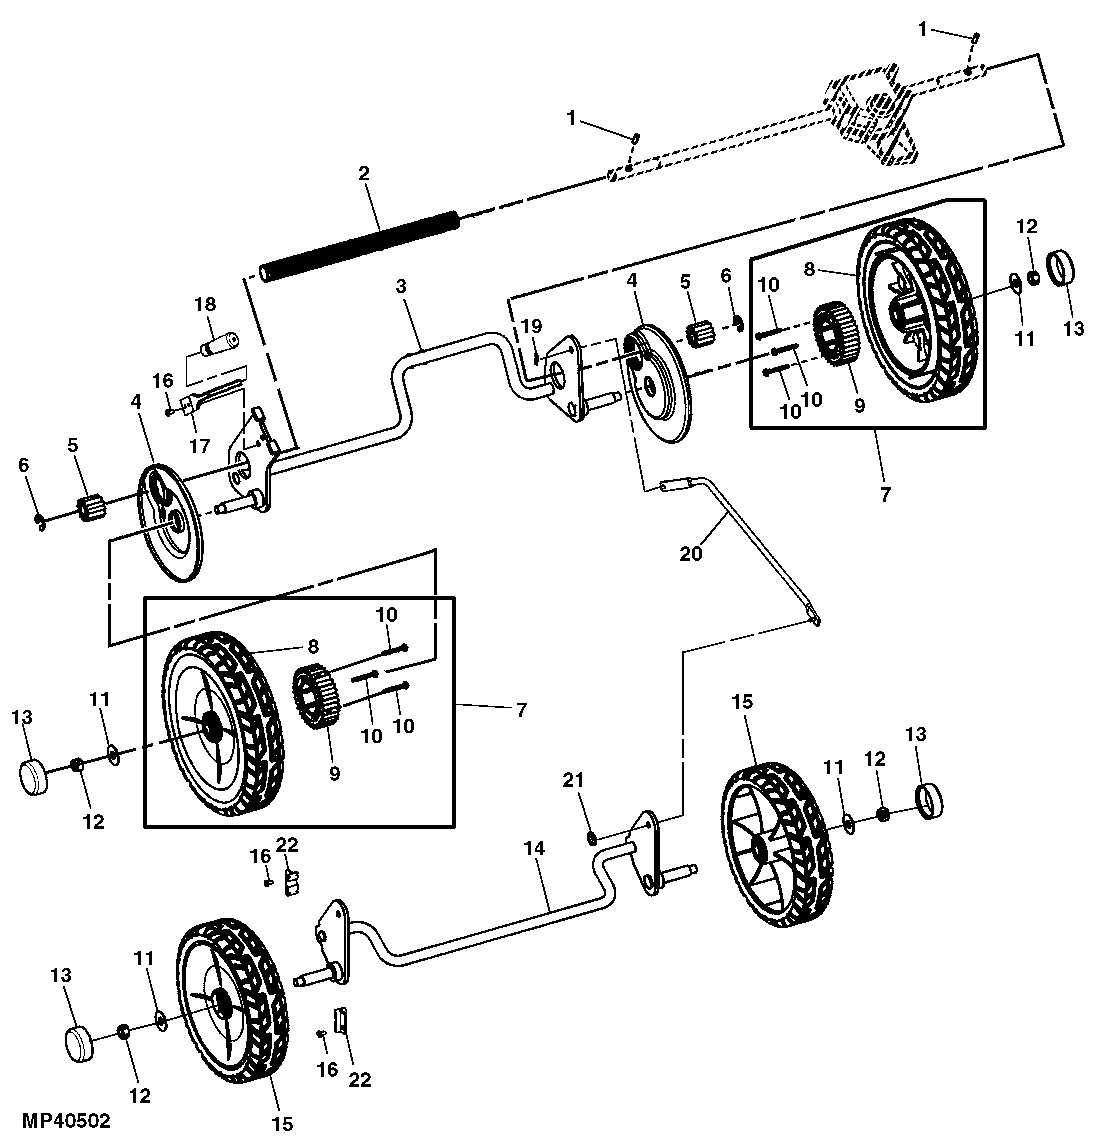 John Deere Plow Diagram